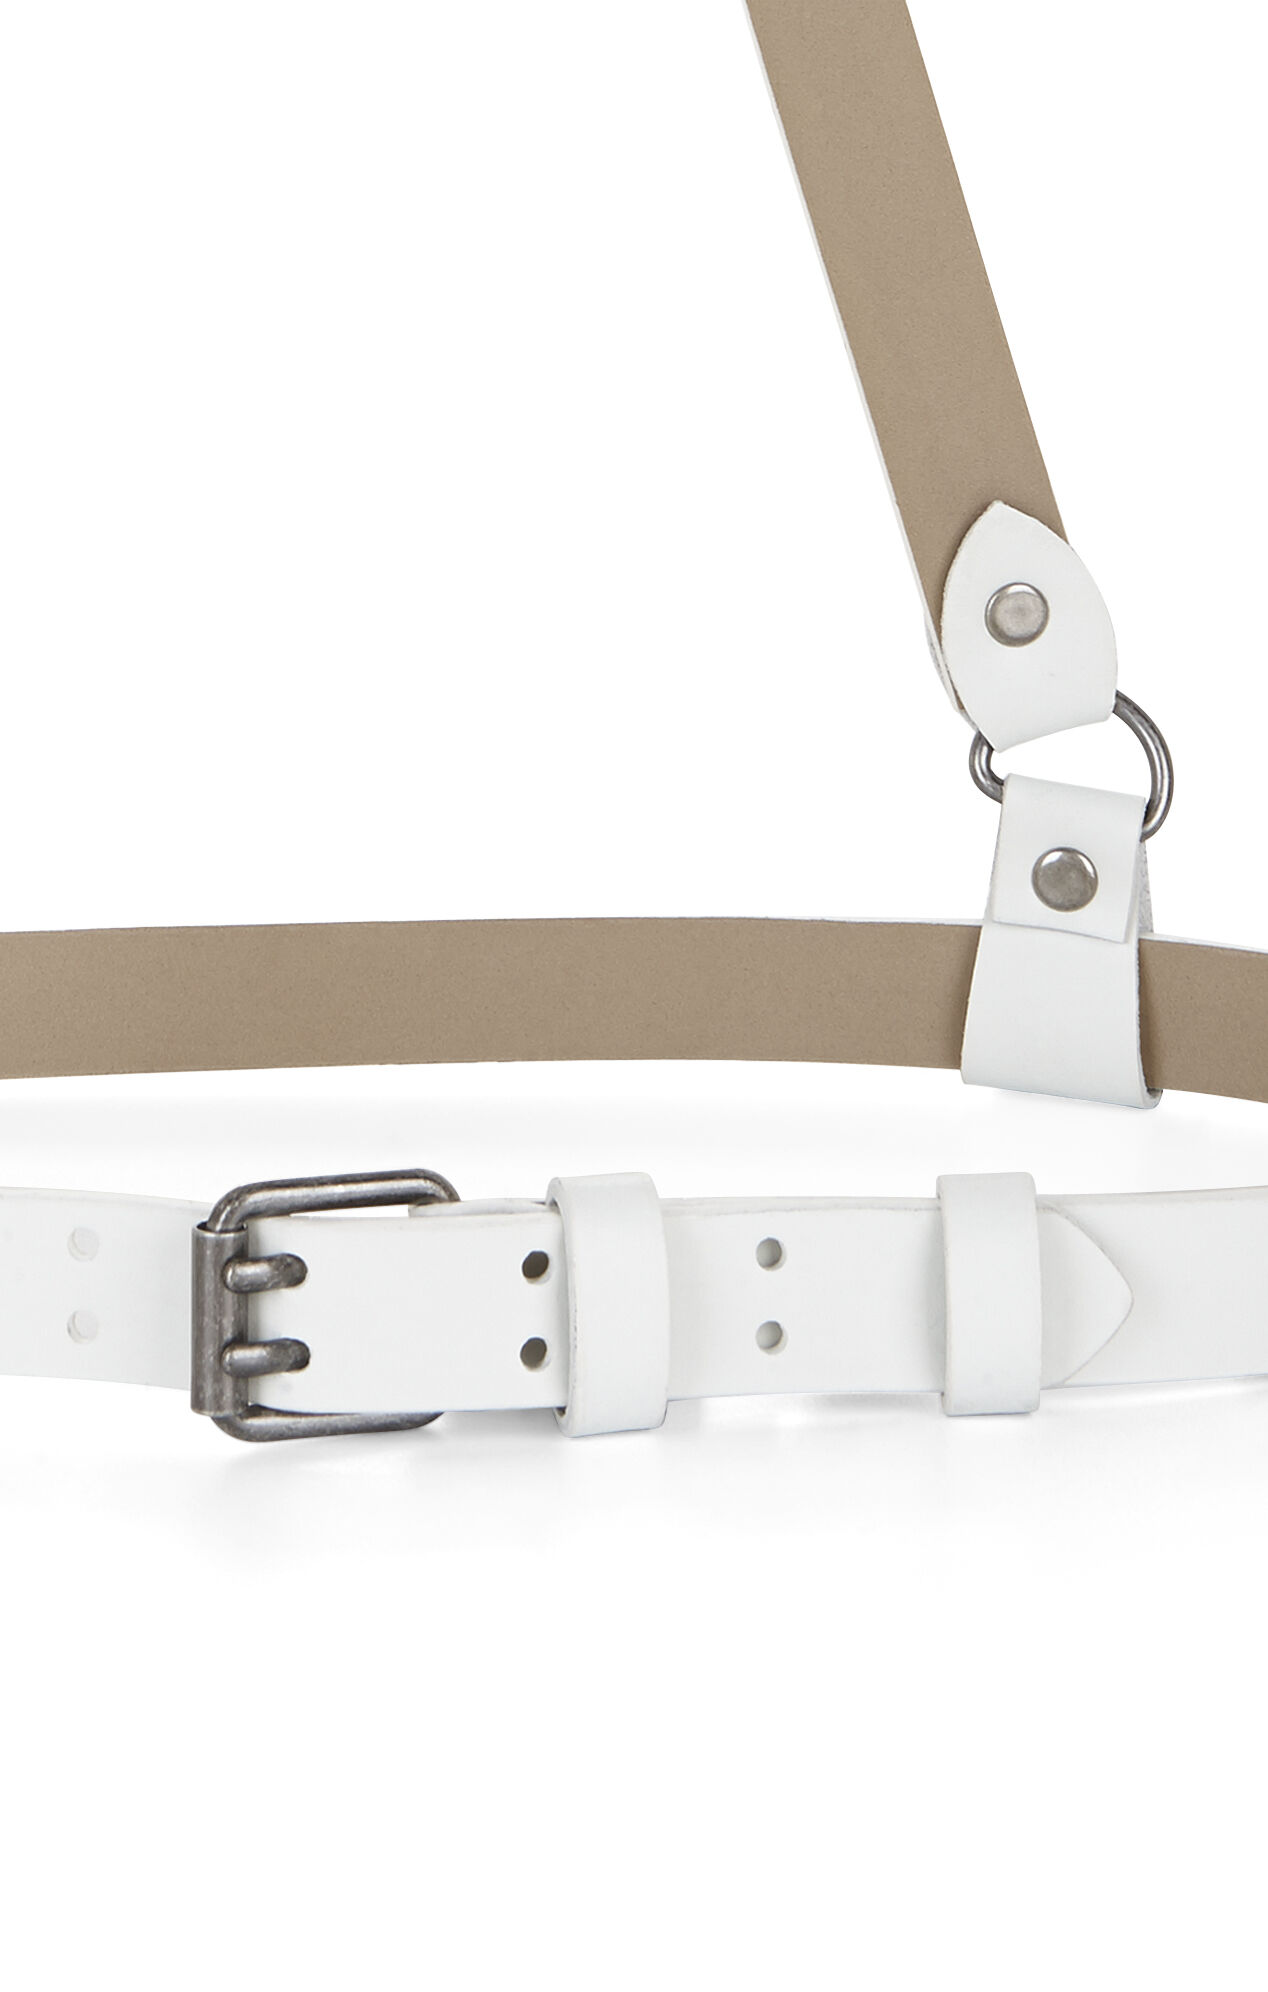 Sam Waist Belt With Shoulder Strap